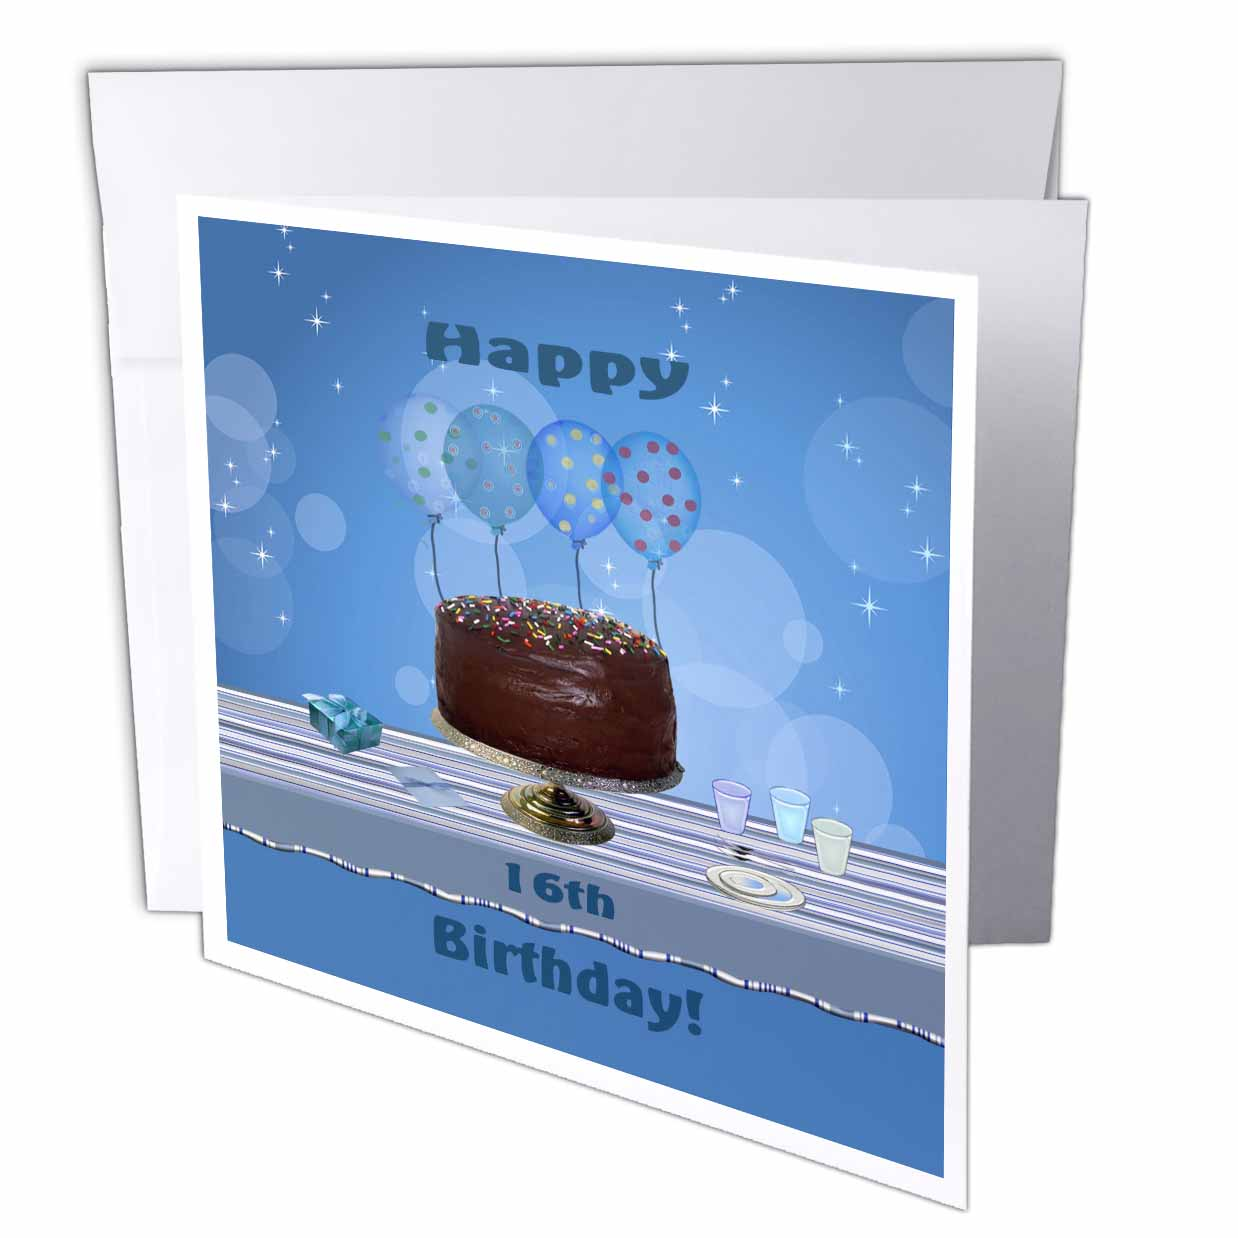 3dRose 16th Birthday Party with Chocolate Cake and Blue Balloons, Greeting Cards, 6 x 6 inches, set of 12